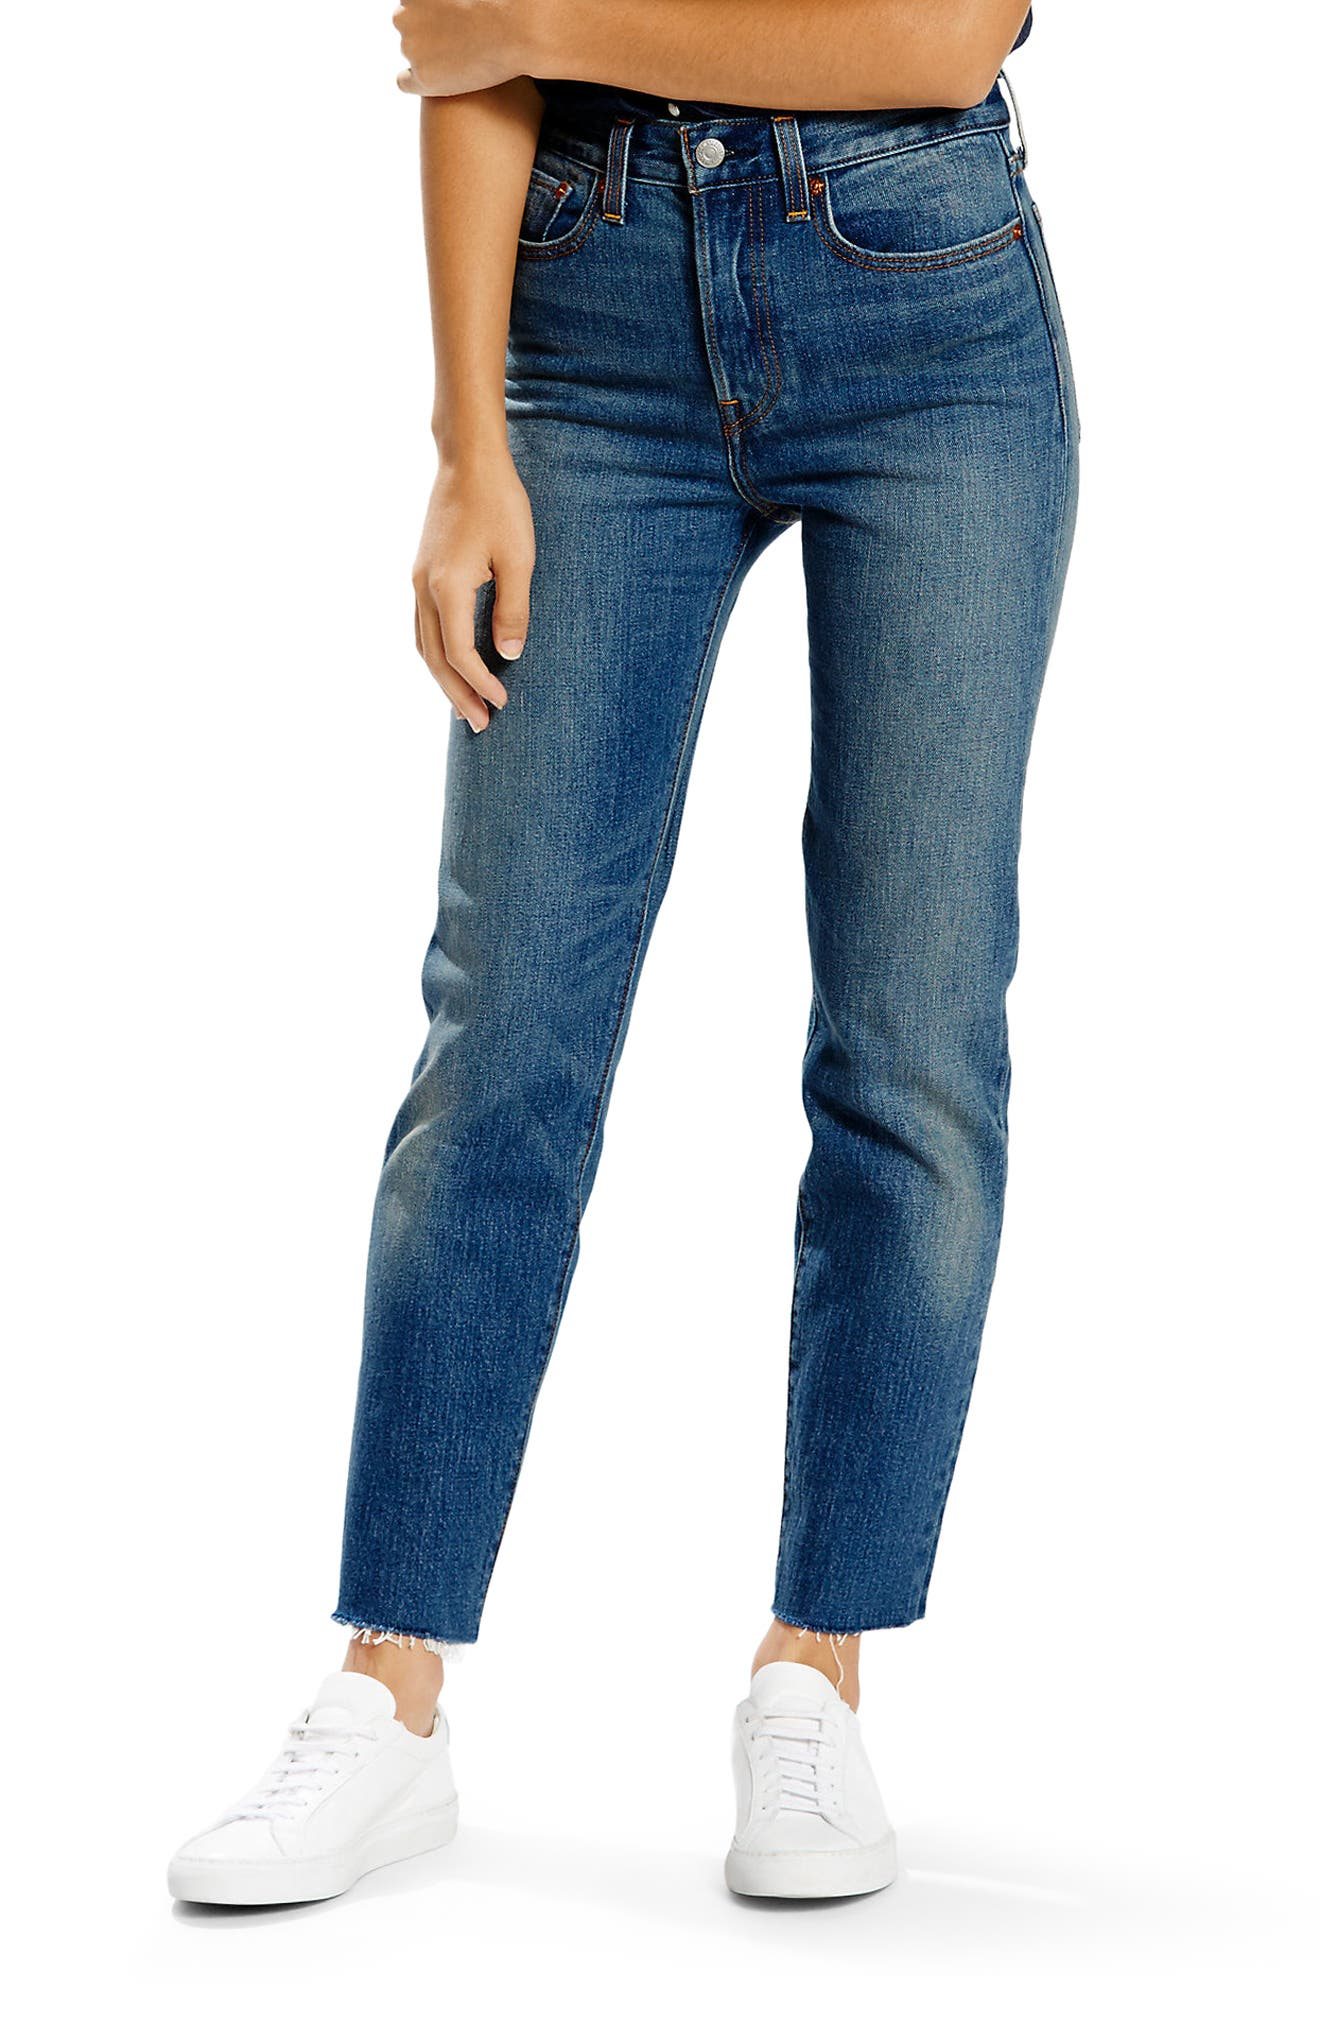 Wedgie High Waist Straight Jeans,                             Main thumbnail 1, color,                             Classic Tint